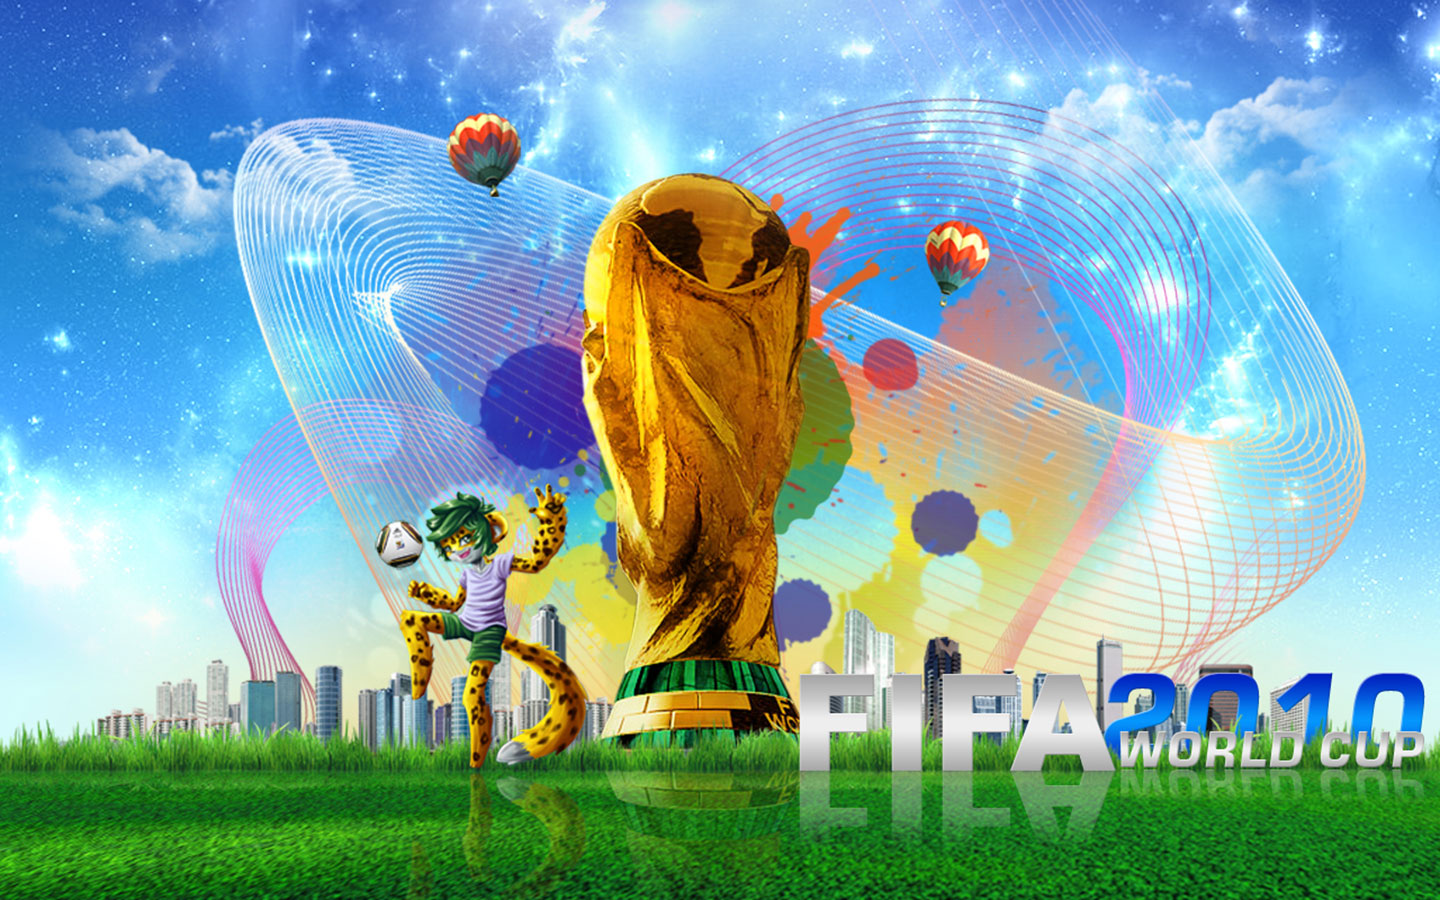 world cup,world cup 2010, South Africa, football, soccer, Wallpaper World Cup 2010